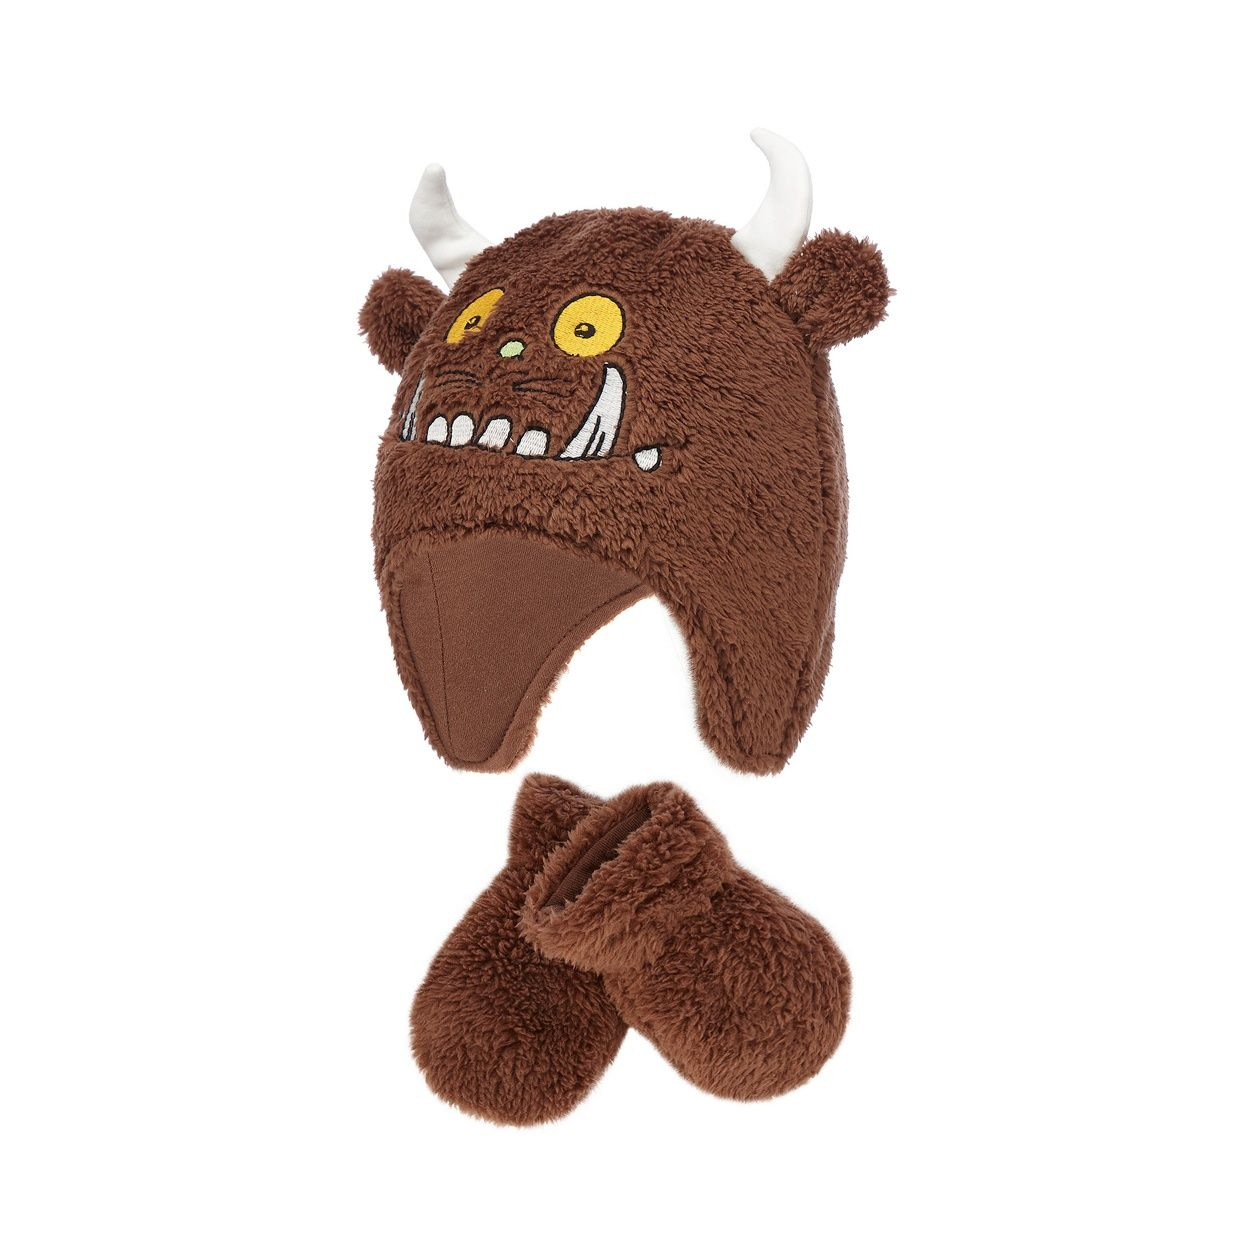 This Gruffalo hat and mittens set is the perfect gift for a little adventurer. Its super-soft faux fur design is complete with horns, claws and a Gruffalo applique.